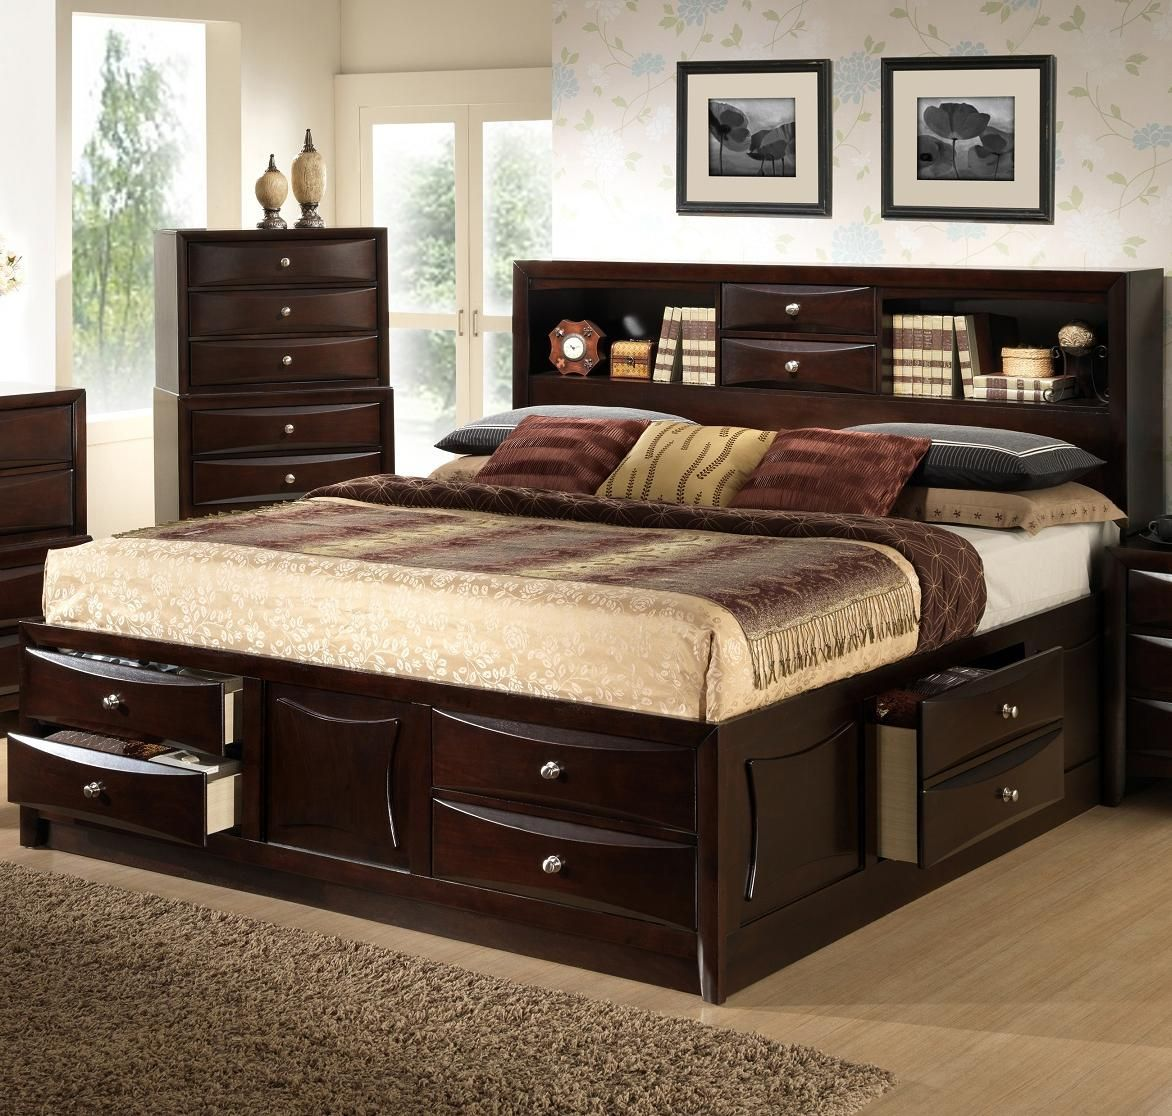 Best C0172 Queen Storage Bed By Lifestyle Bedroom Ideas 640 x 480